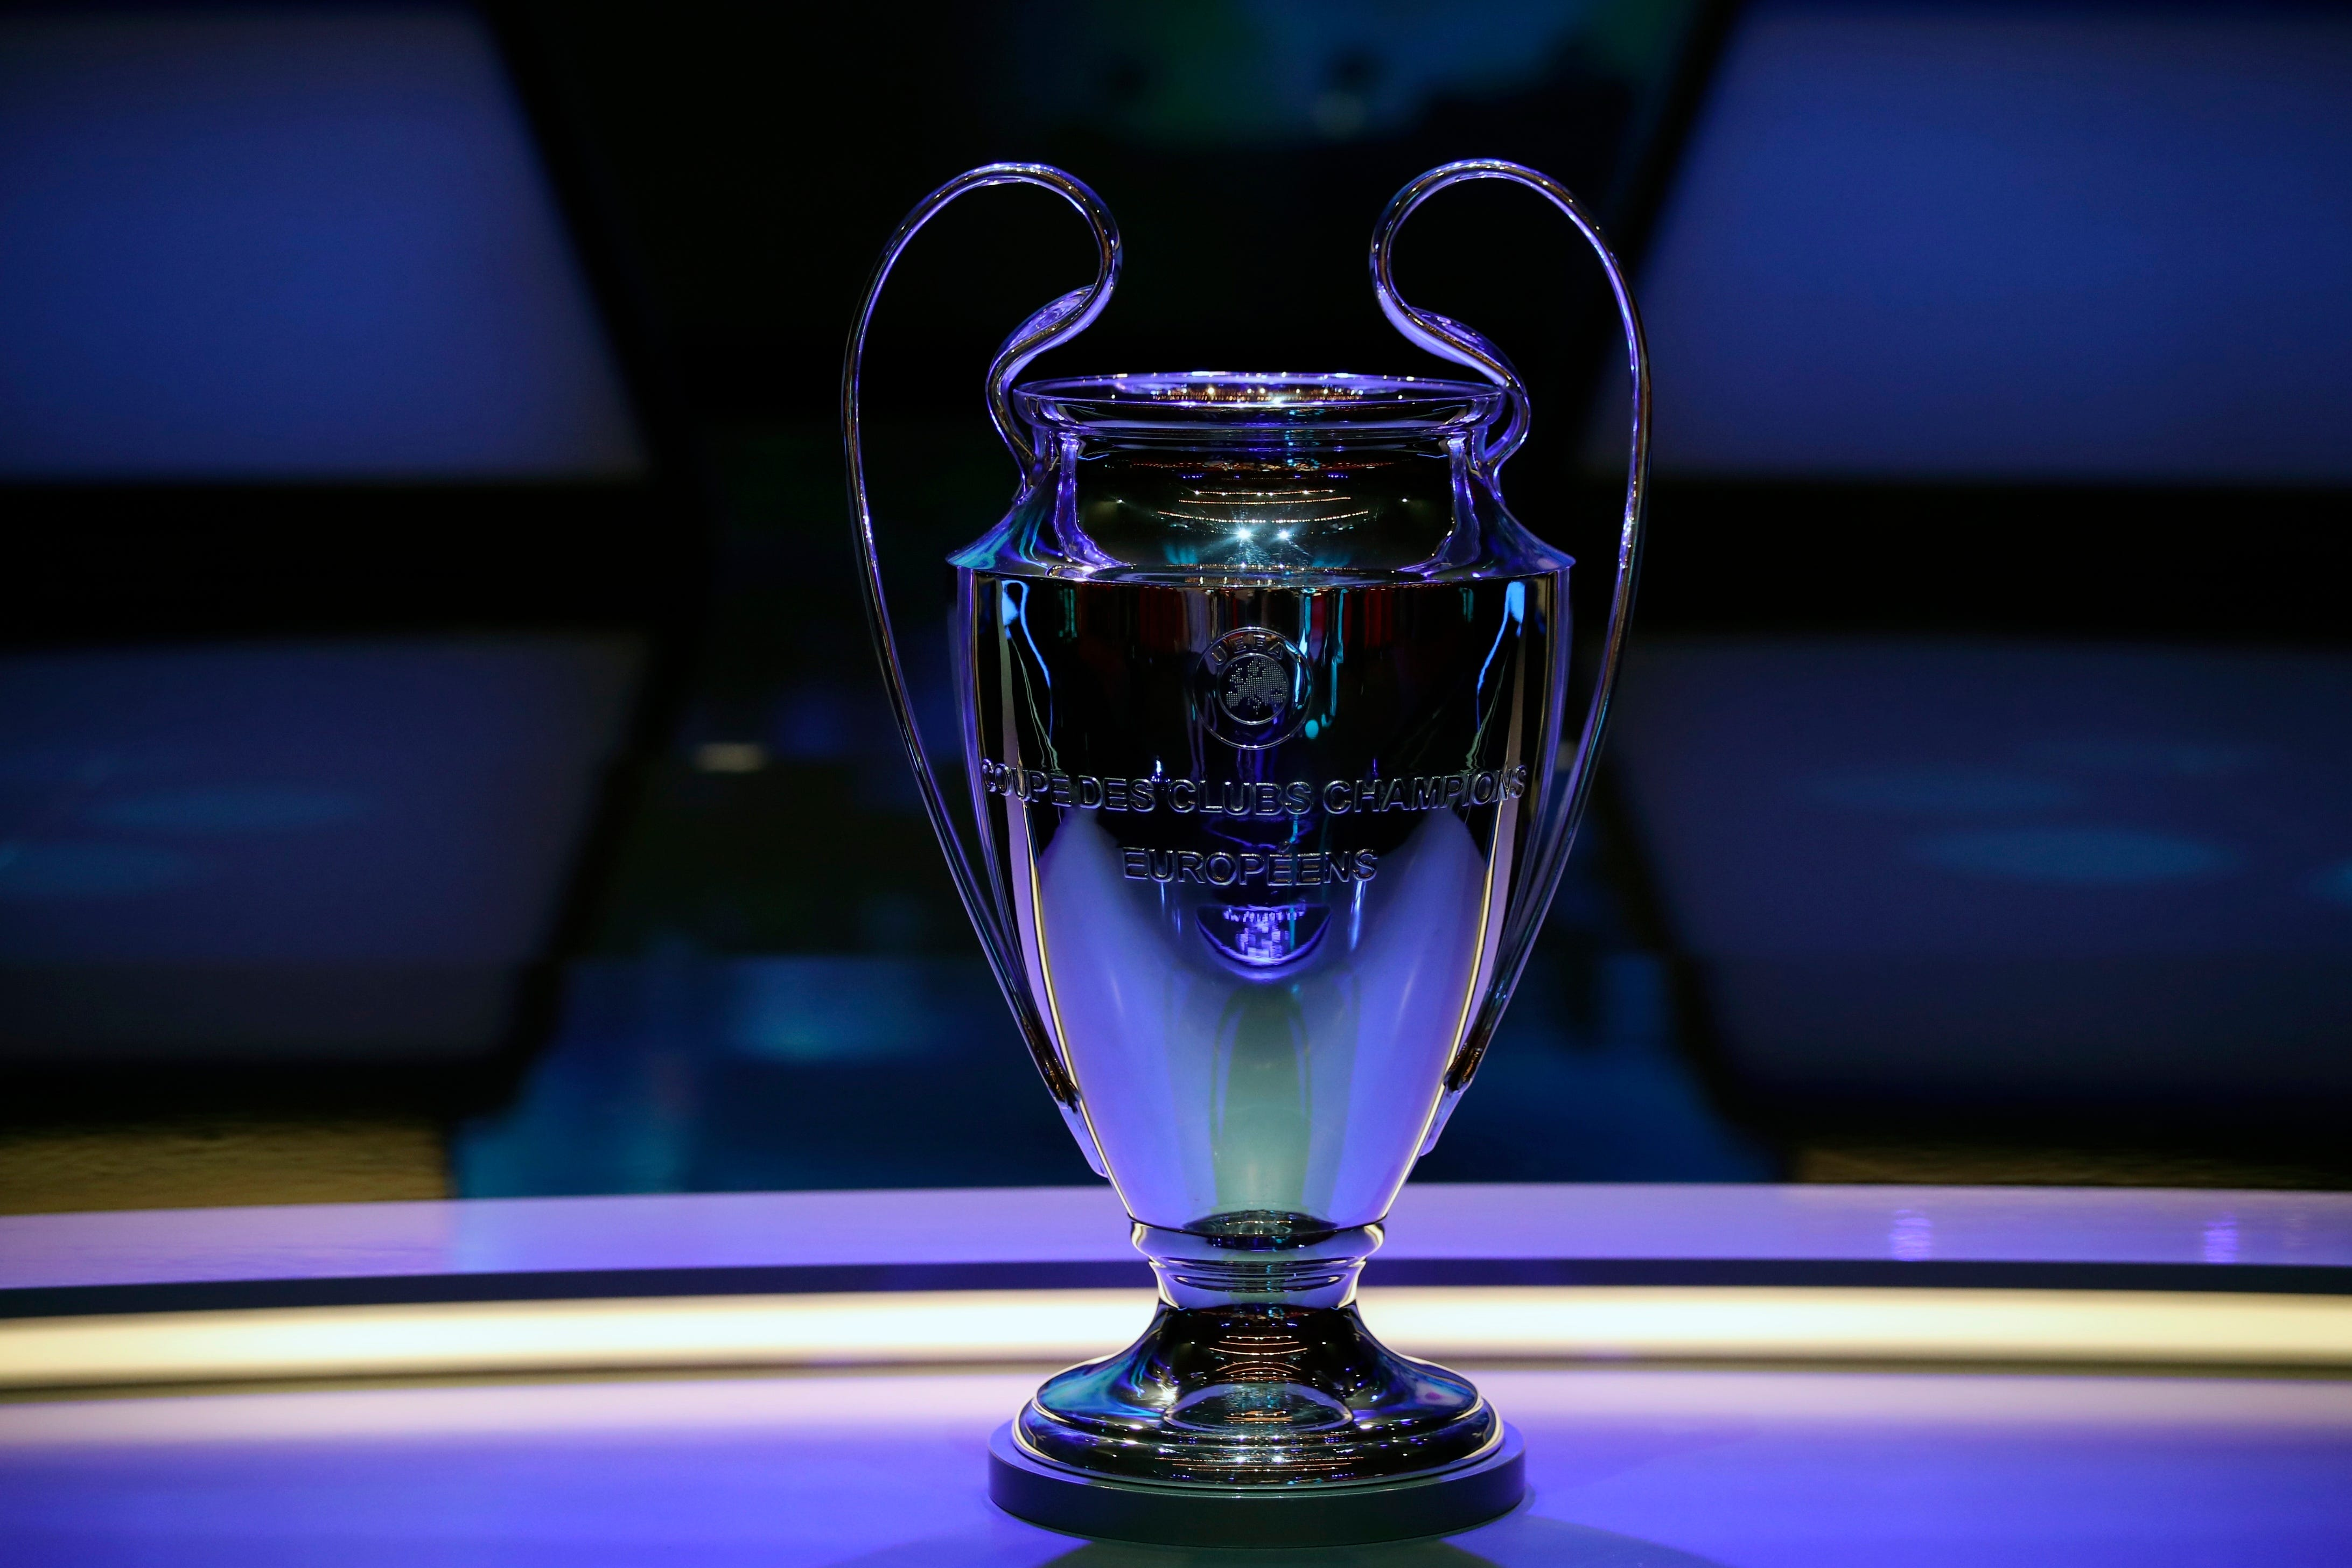 Clubs to get 1/4 of income from Champions League prize money